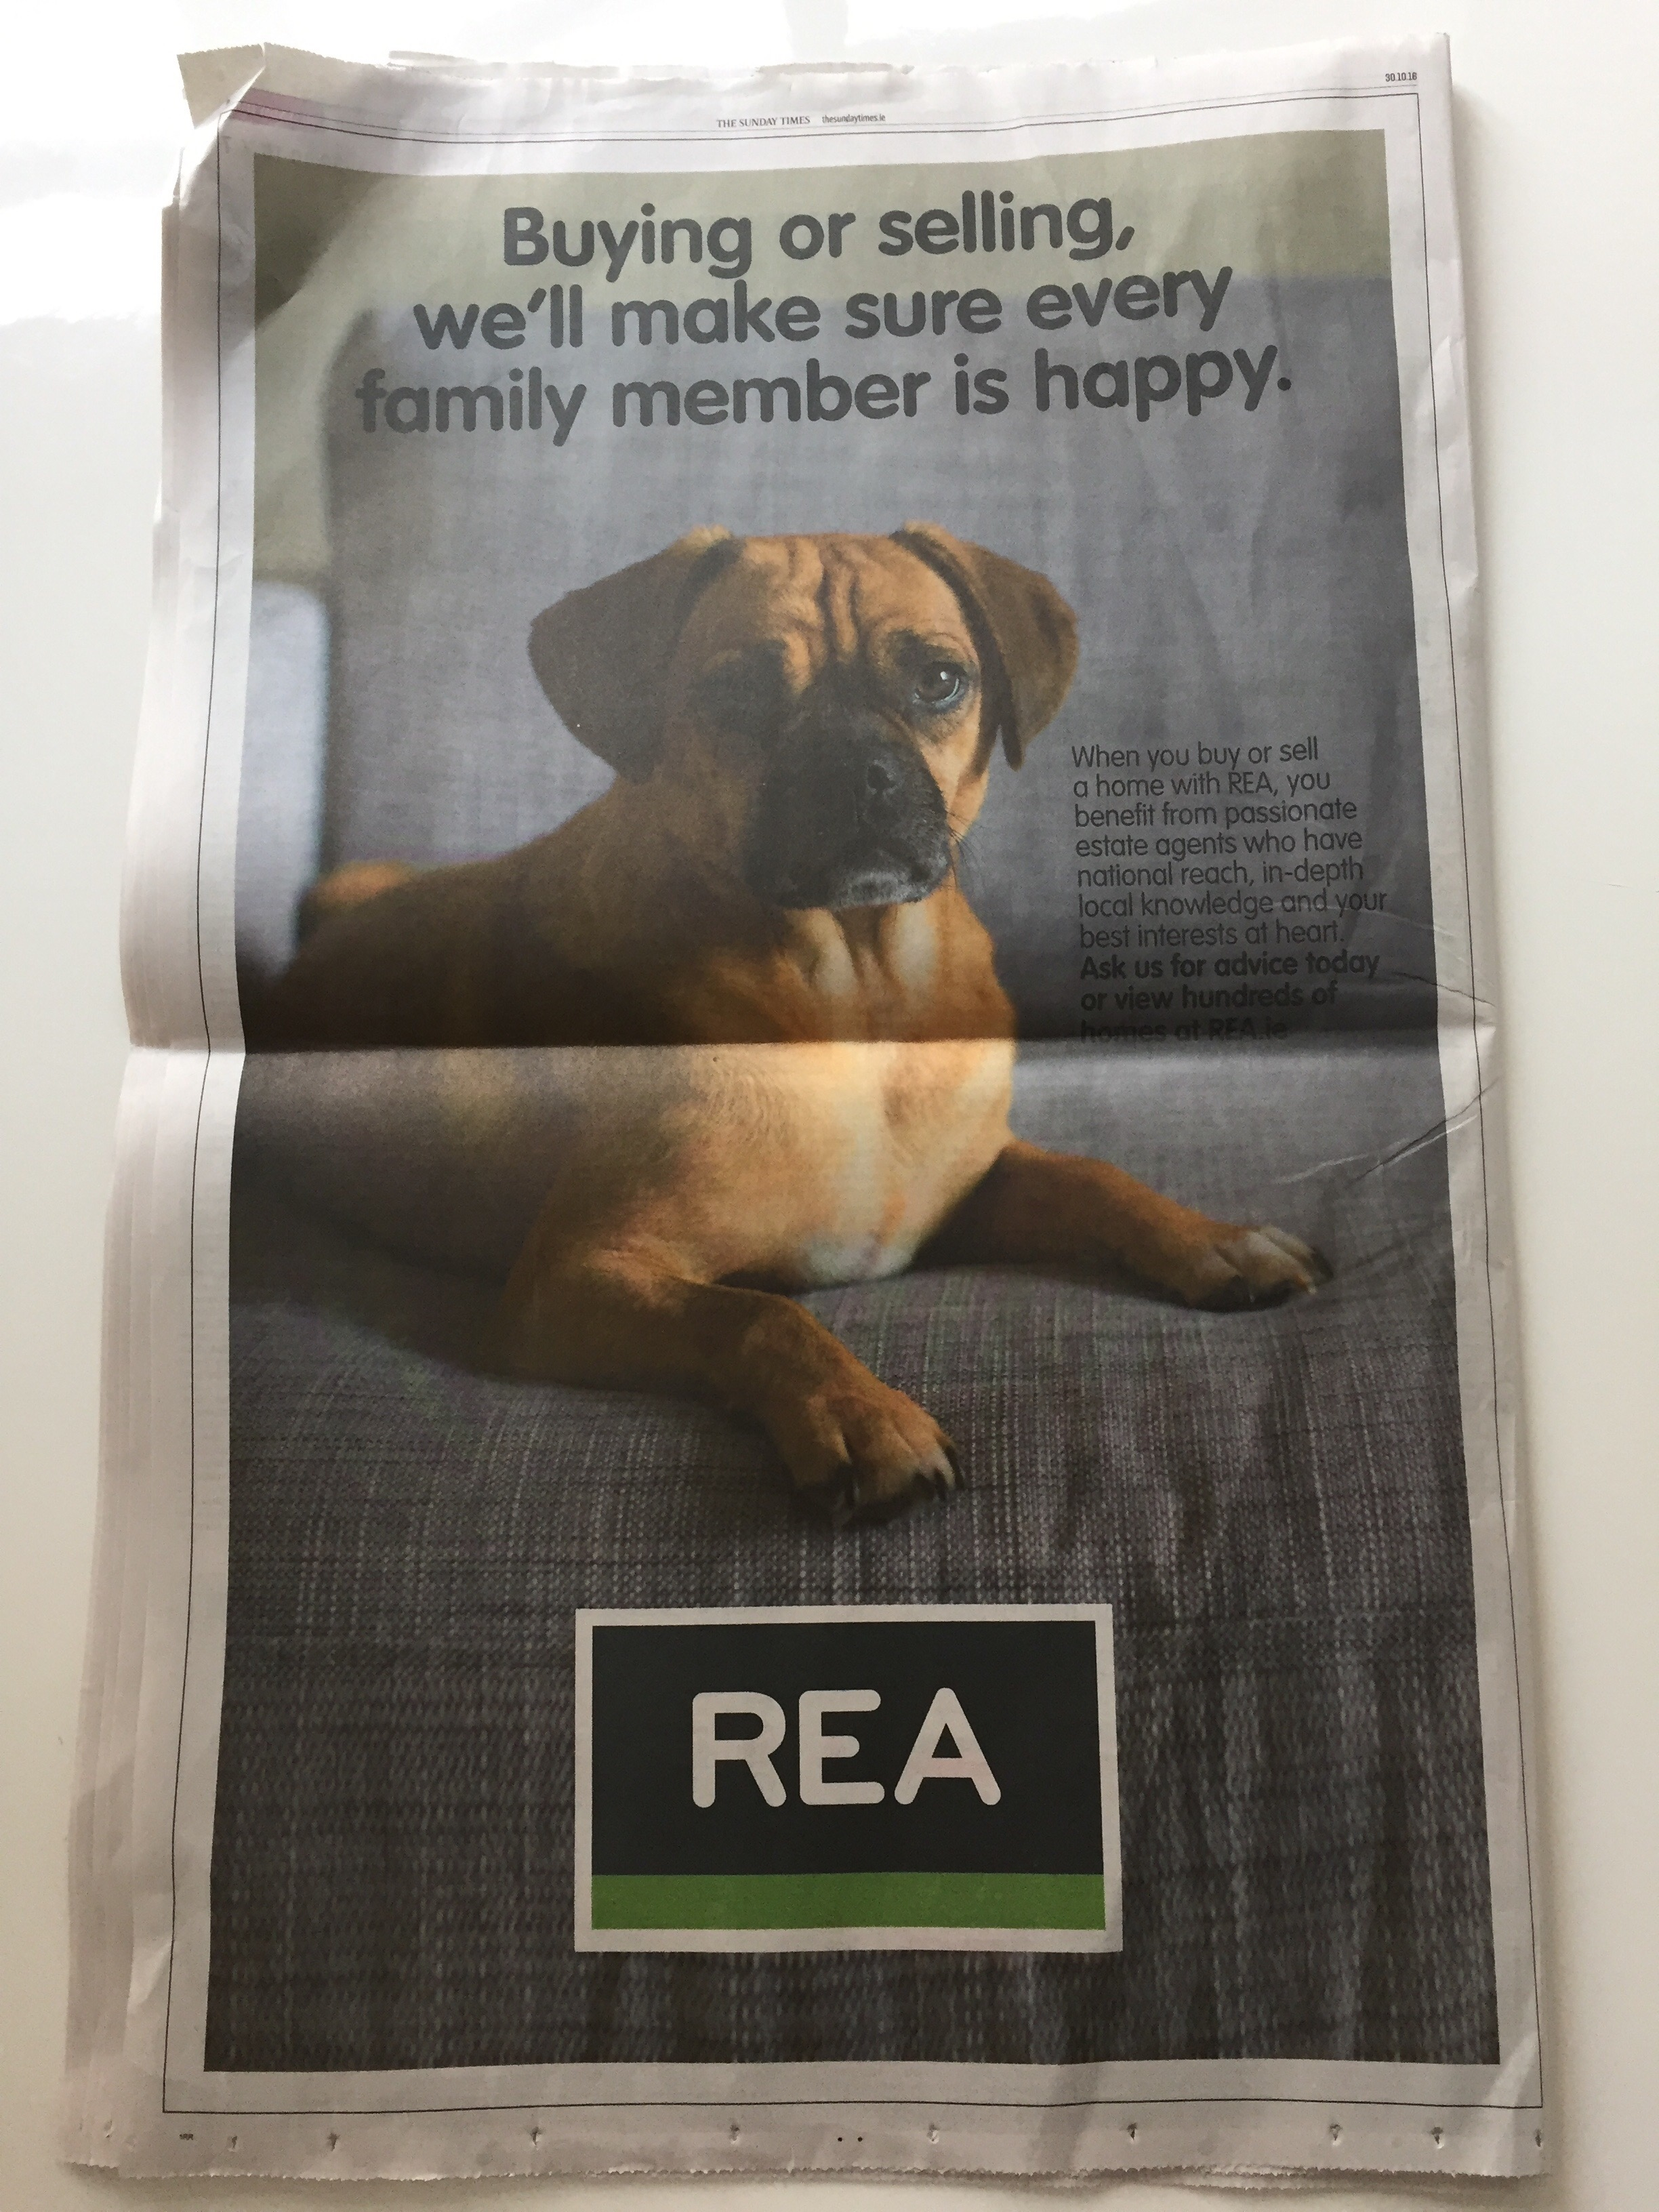 REA Real Estate Alliance – buying or selling, we'll make sure every family member is happy